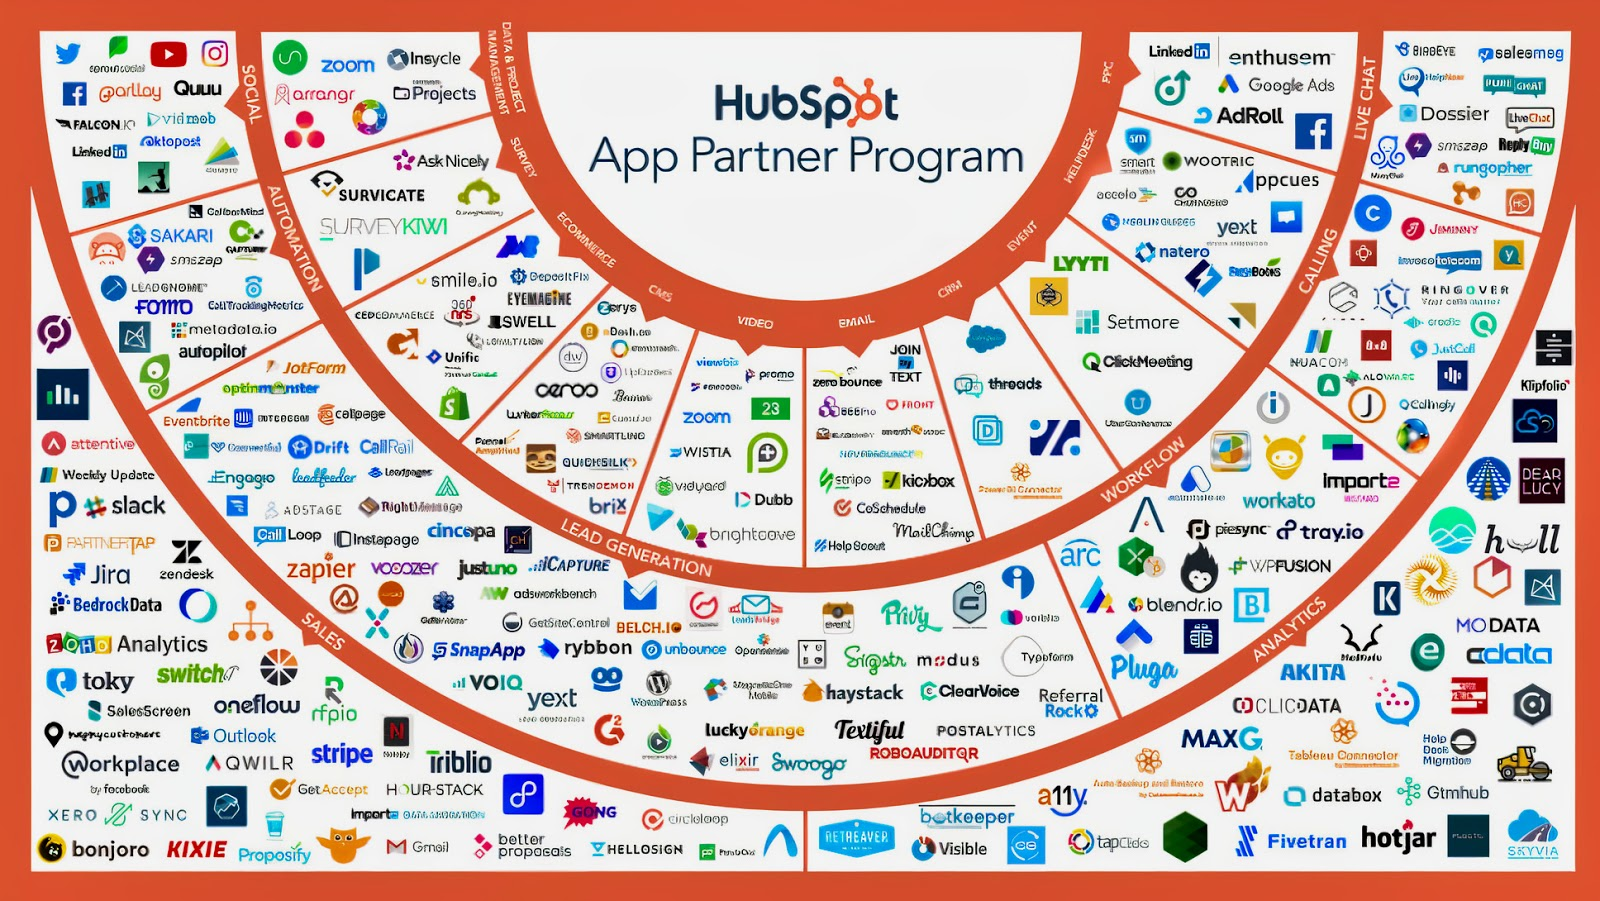 All of the logos of the apps that can be connected to HubSpot tools for freelance writers